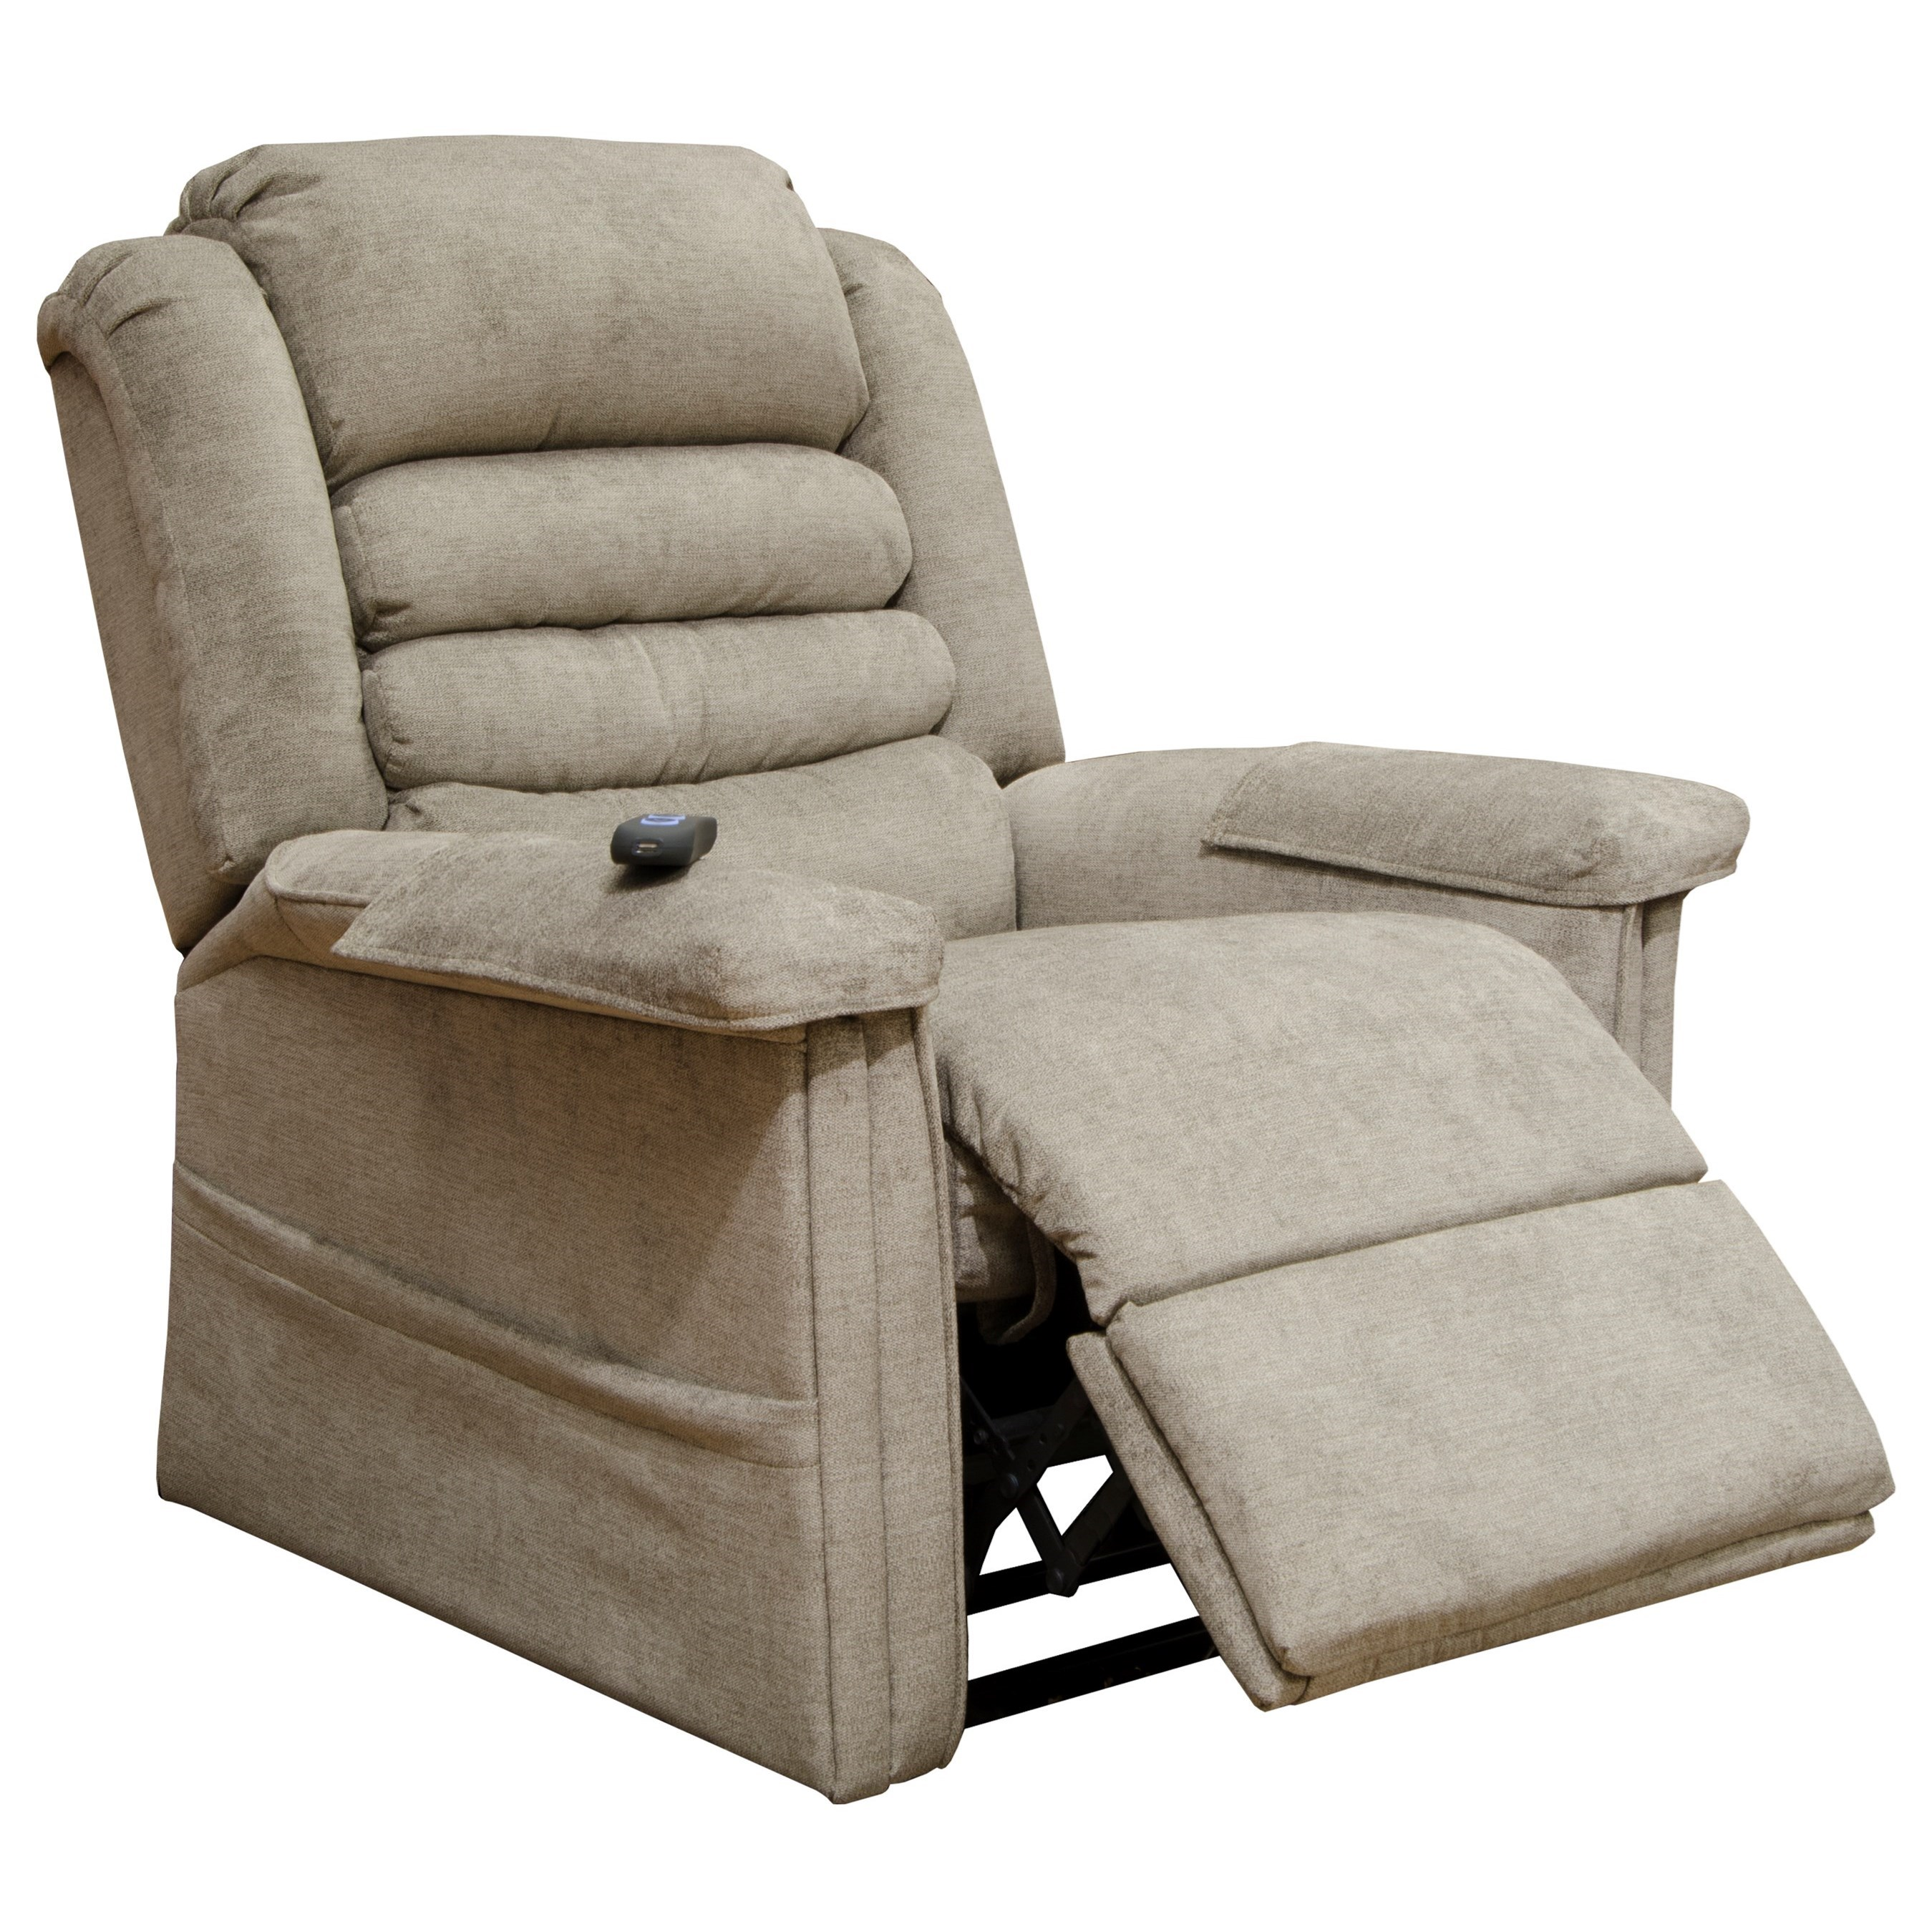 "Invincible 4832 ""Pow'r Lift"" Recliner by Catnapper at Pedigo Furniture"